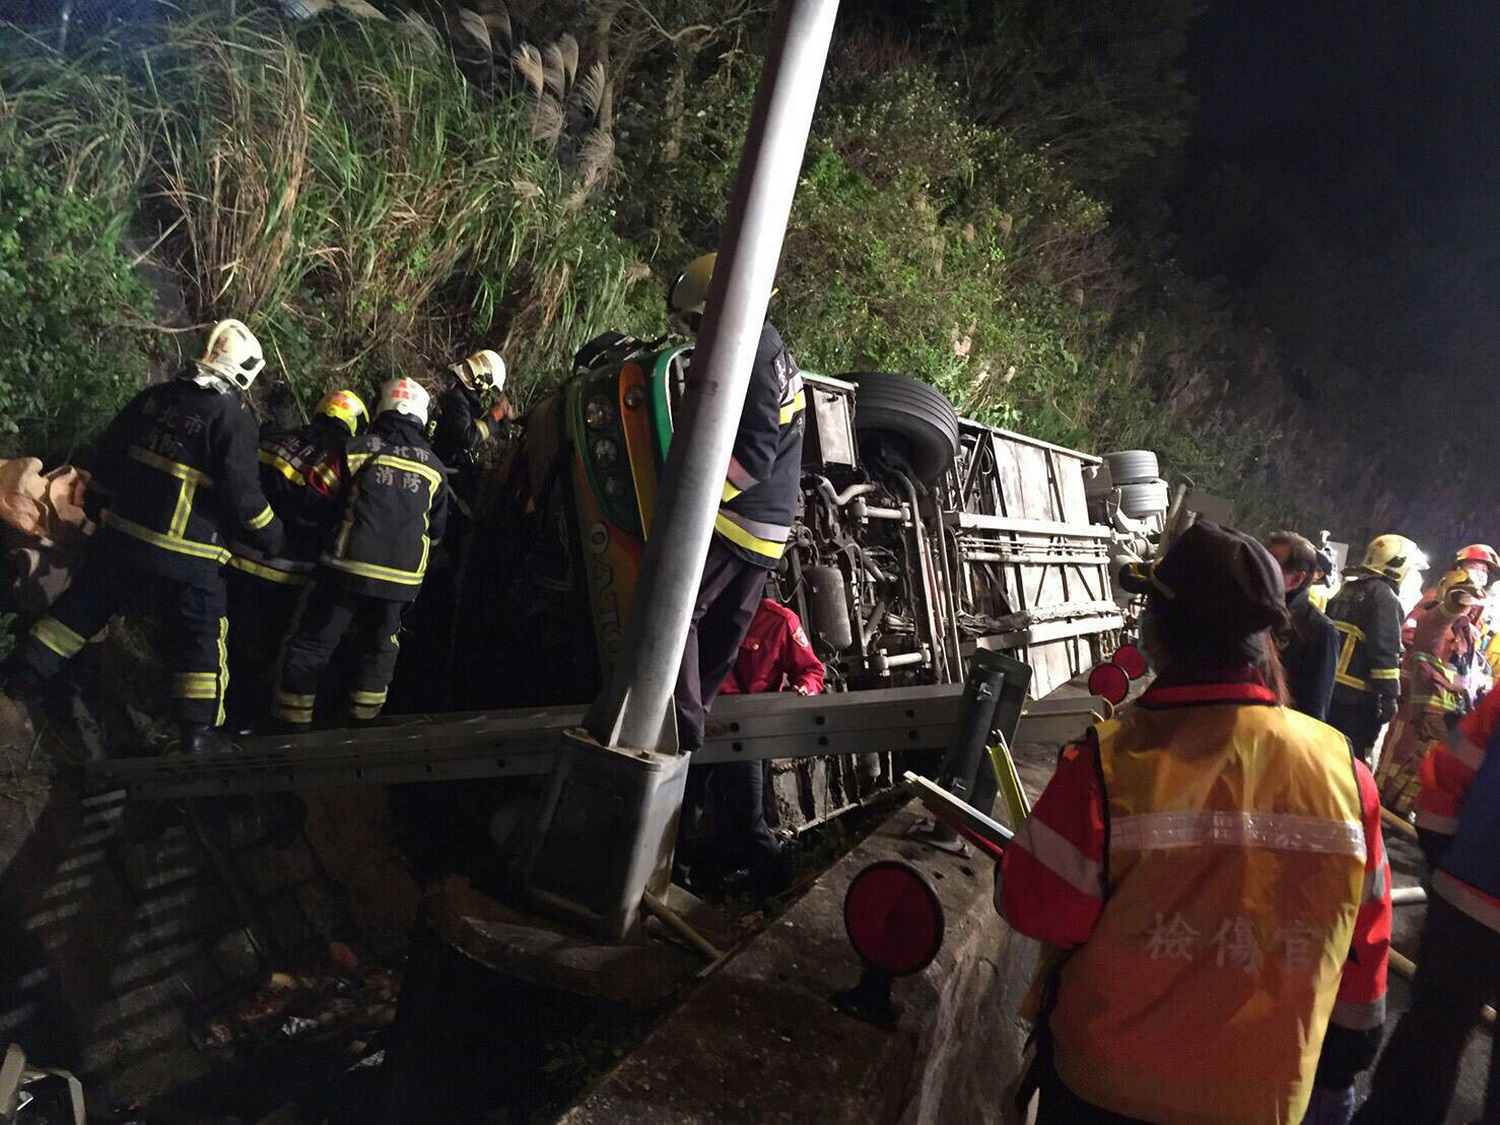 Tour bus crashes in Taiwan, at least 32 dead